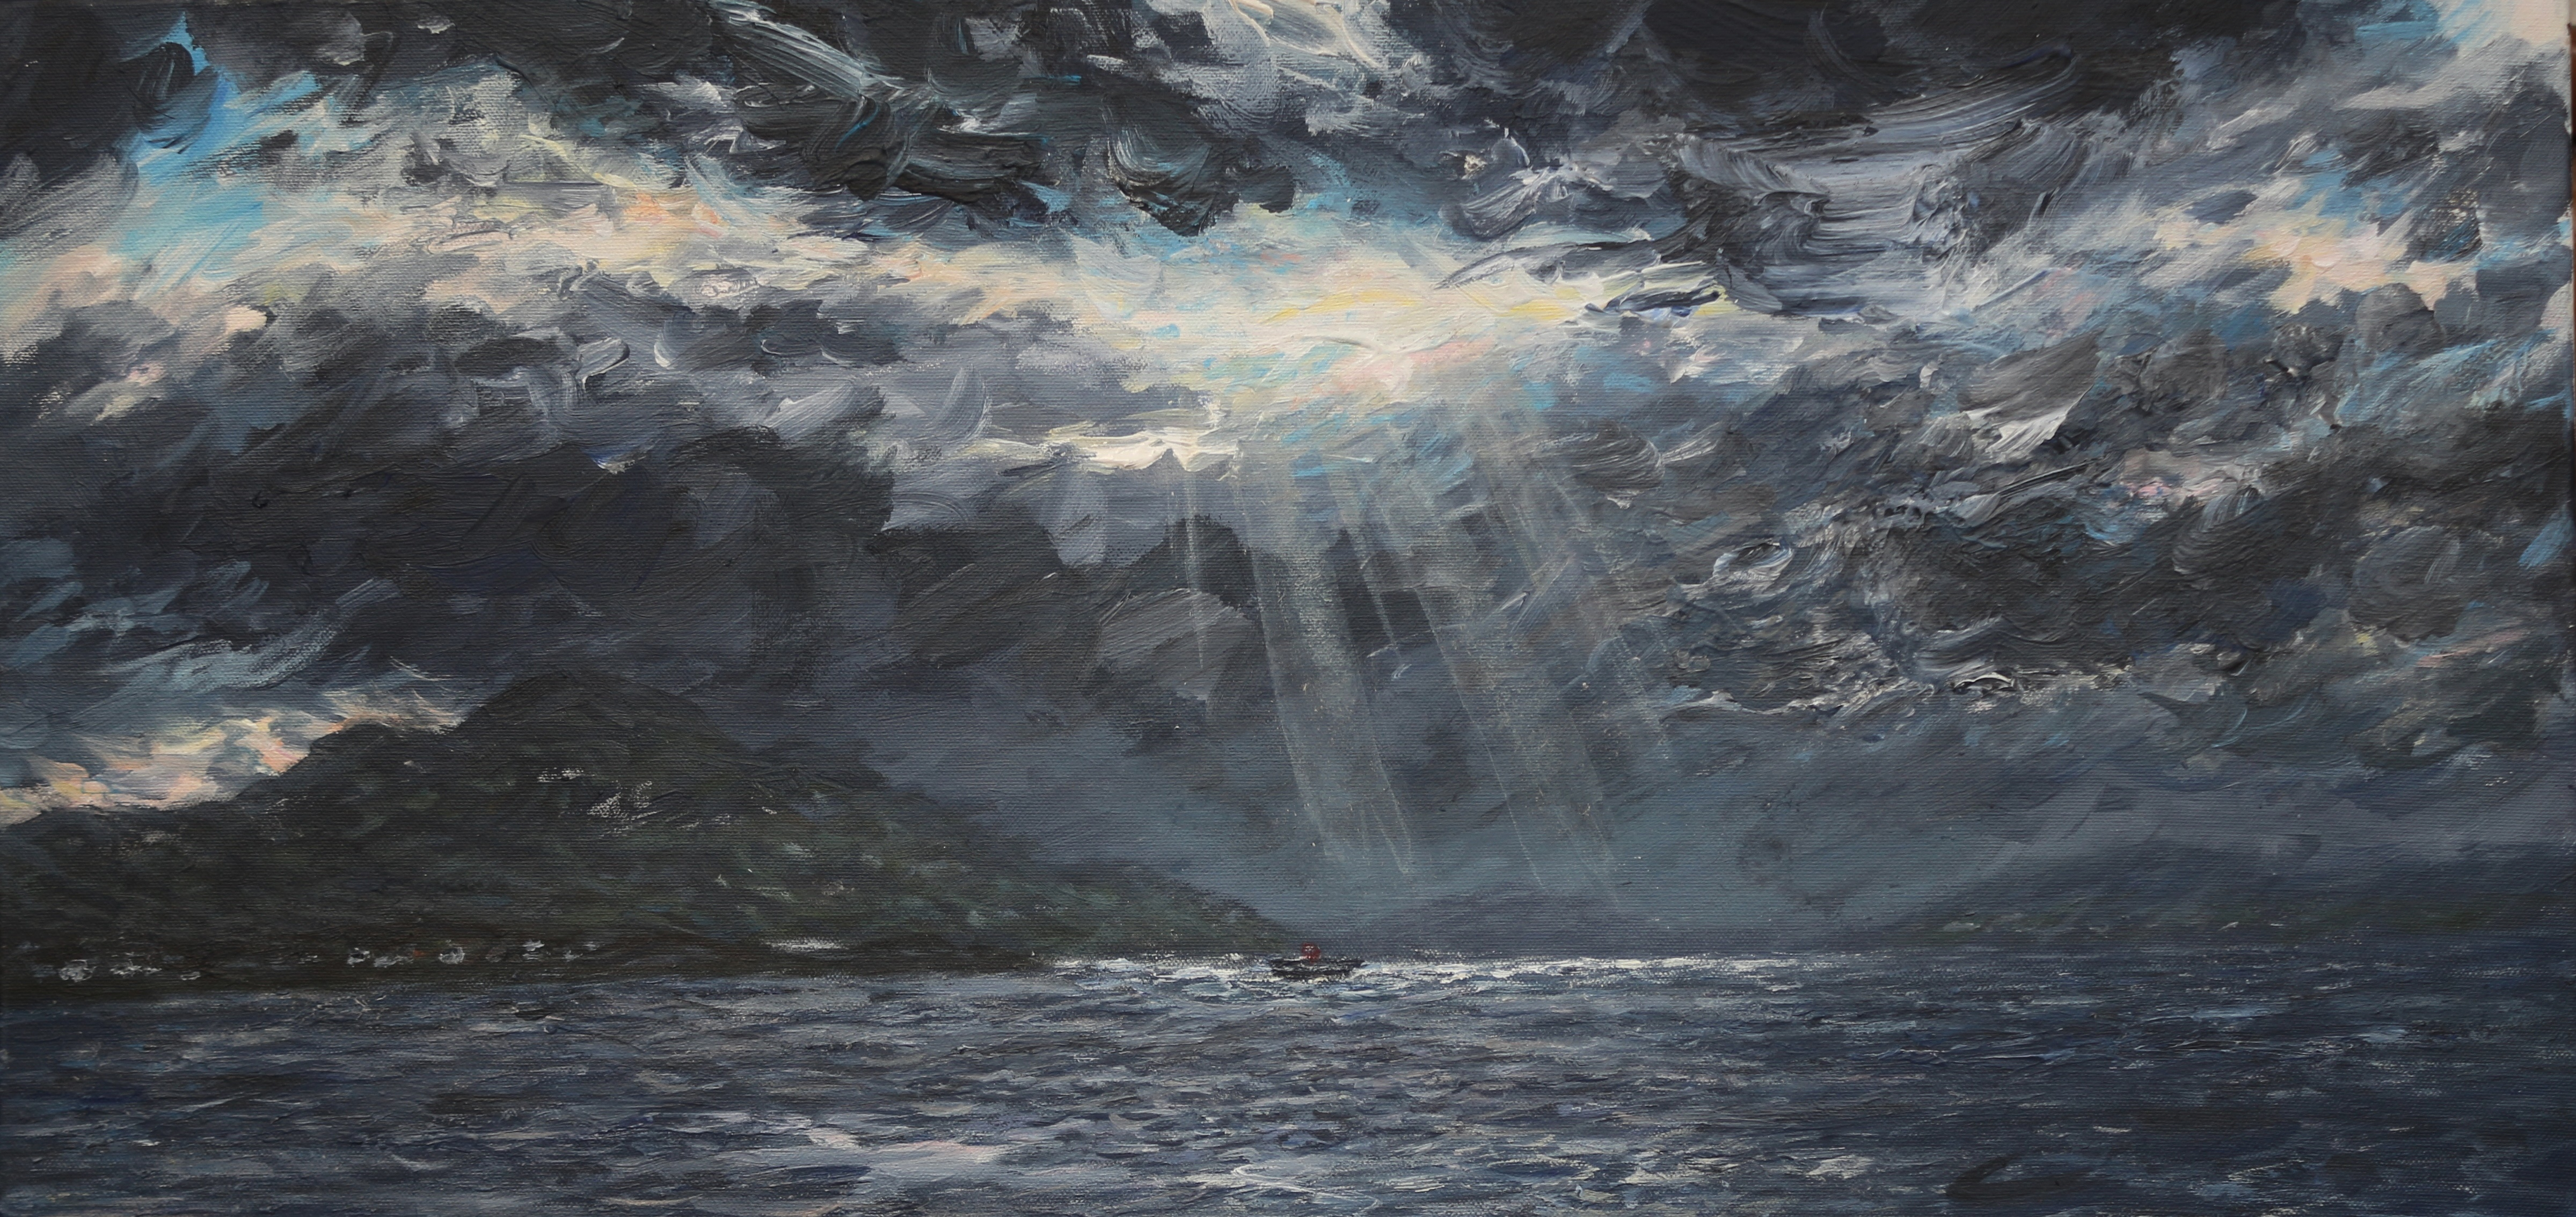 Towards Mull with passageways to heaven  60x70cm - Copy (2)